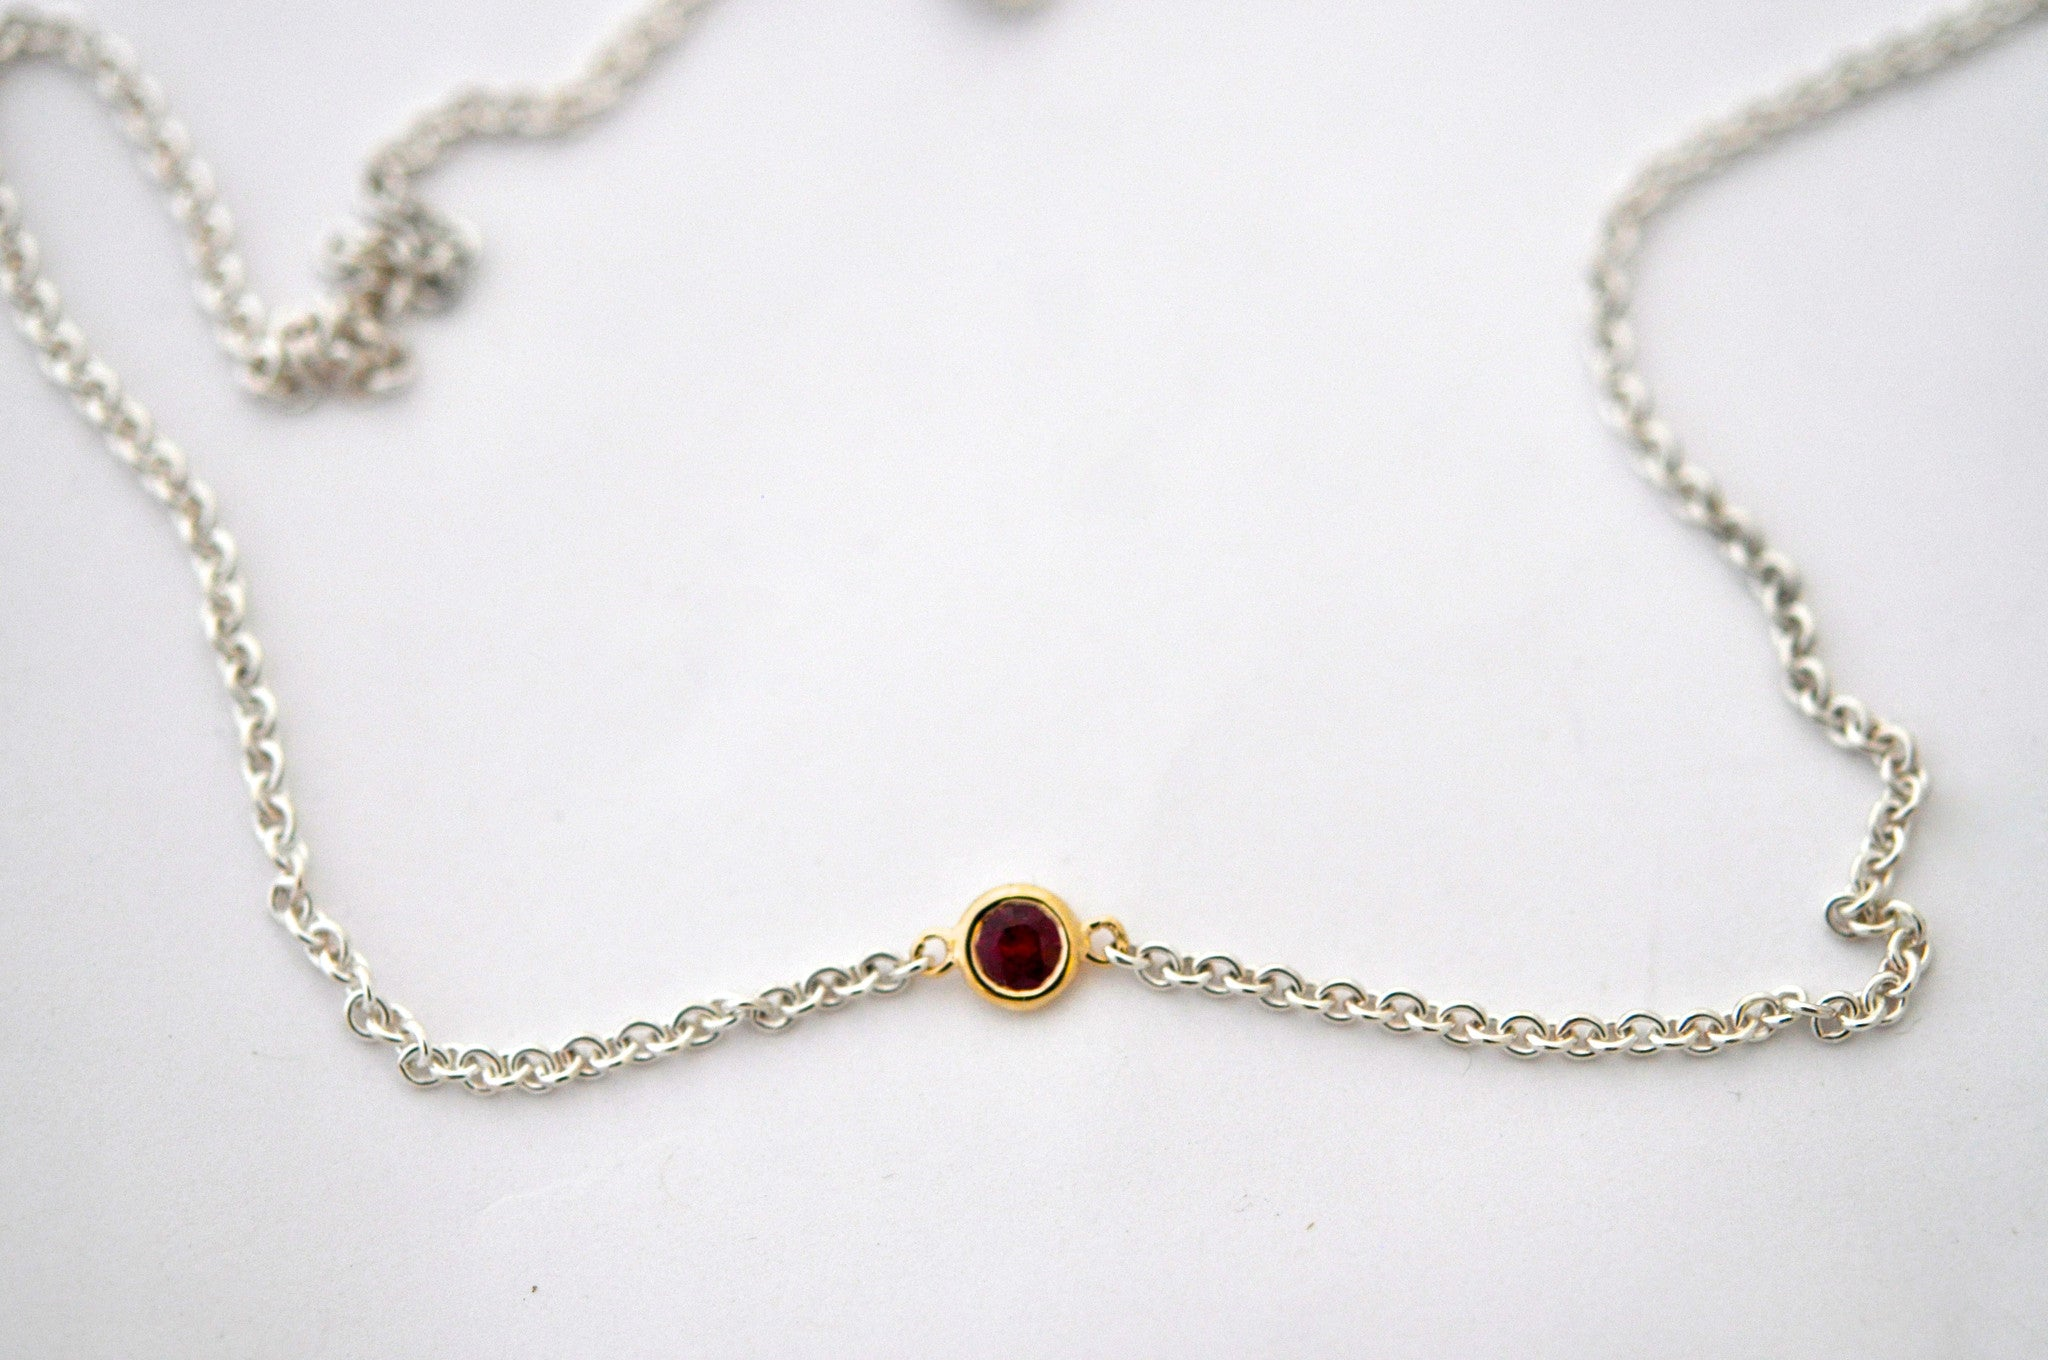 necklace / silver + small gemstone in gold bezel